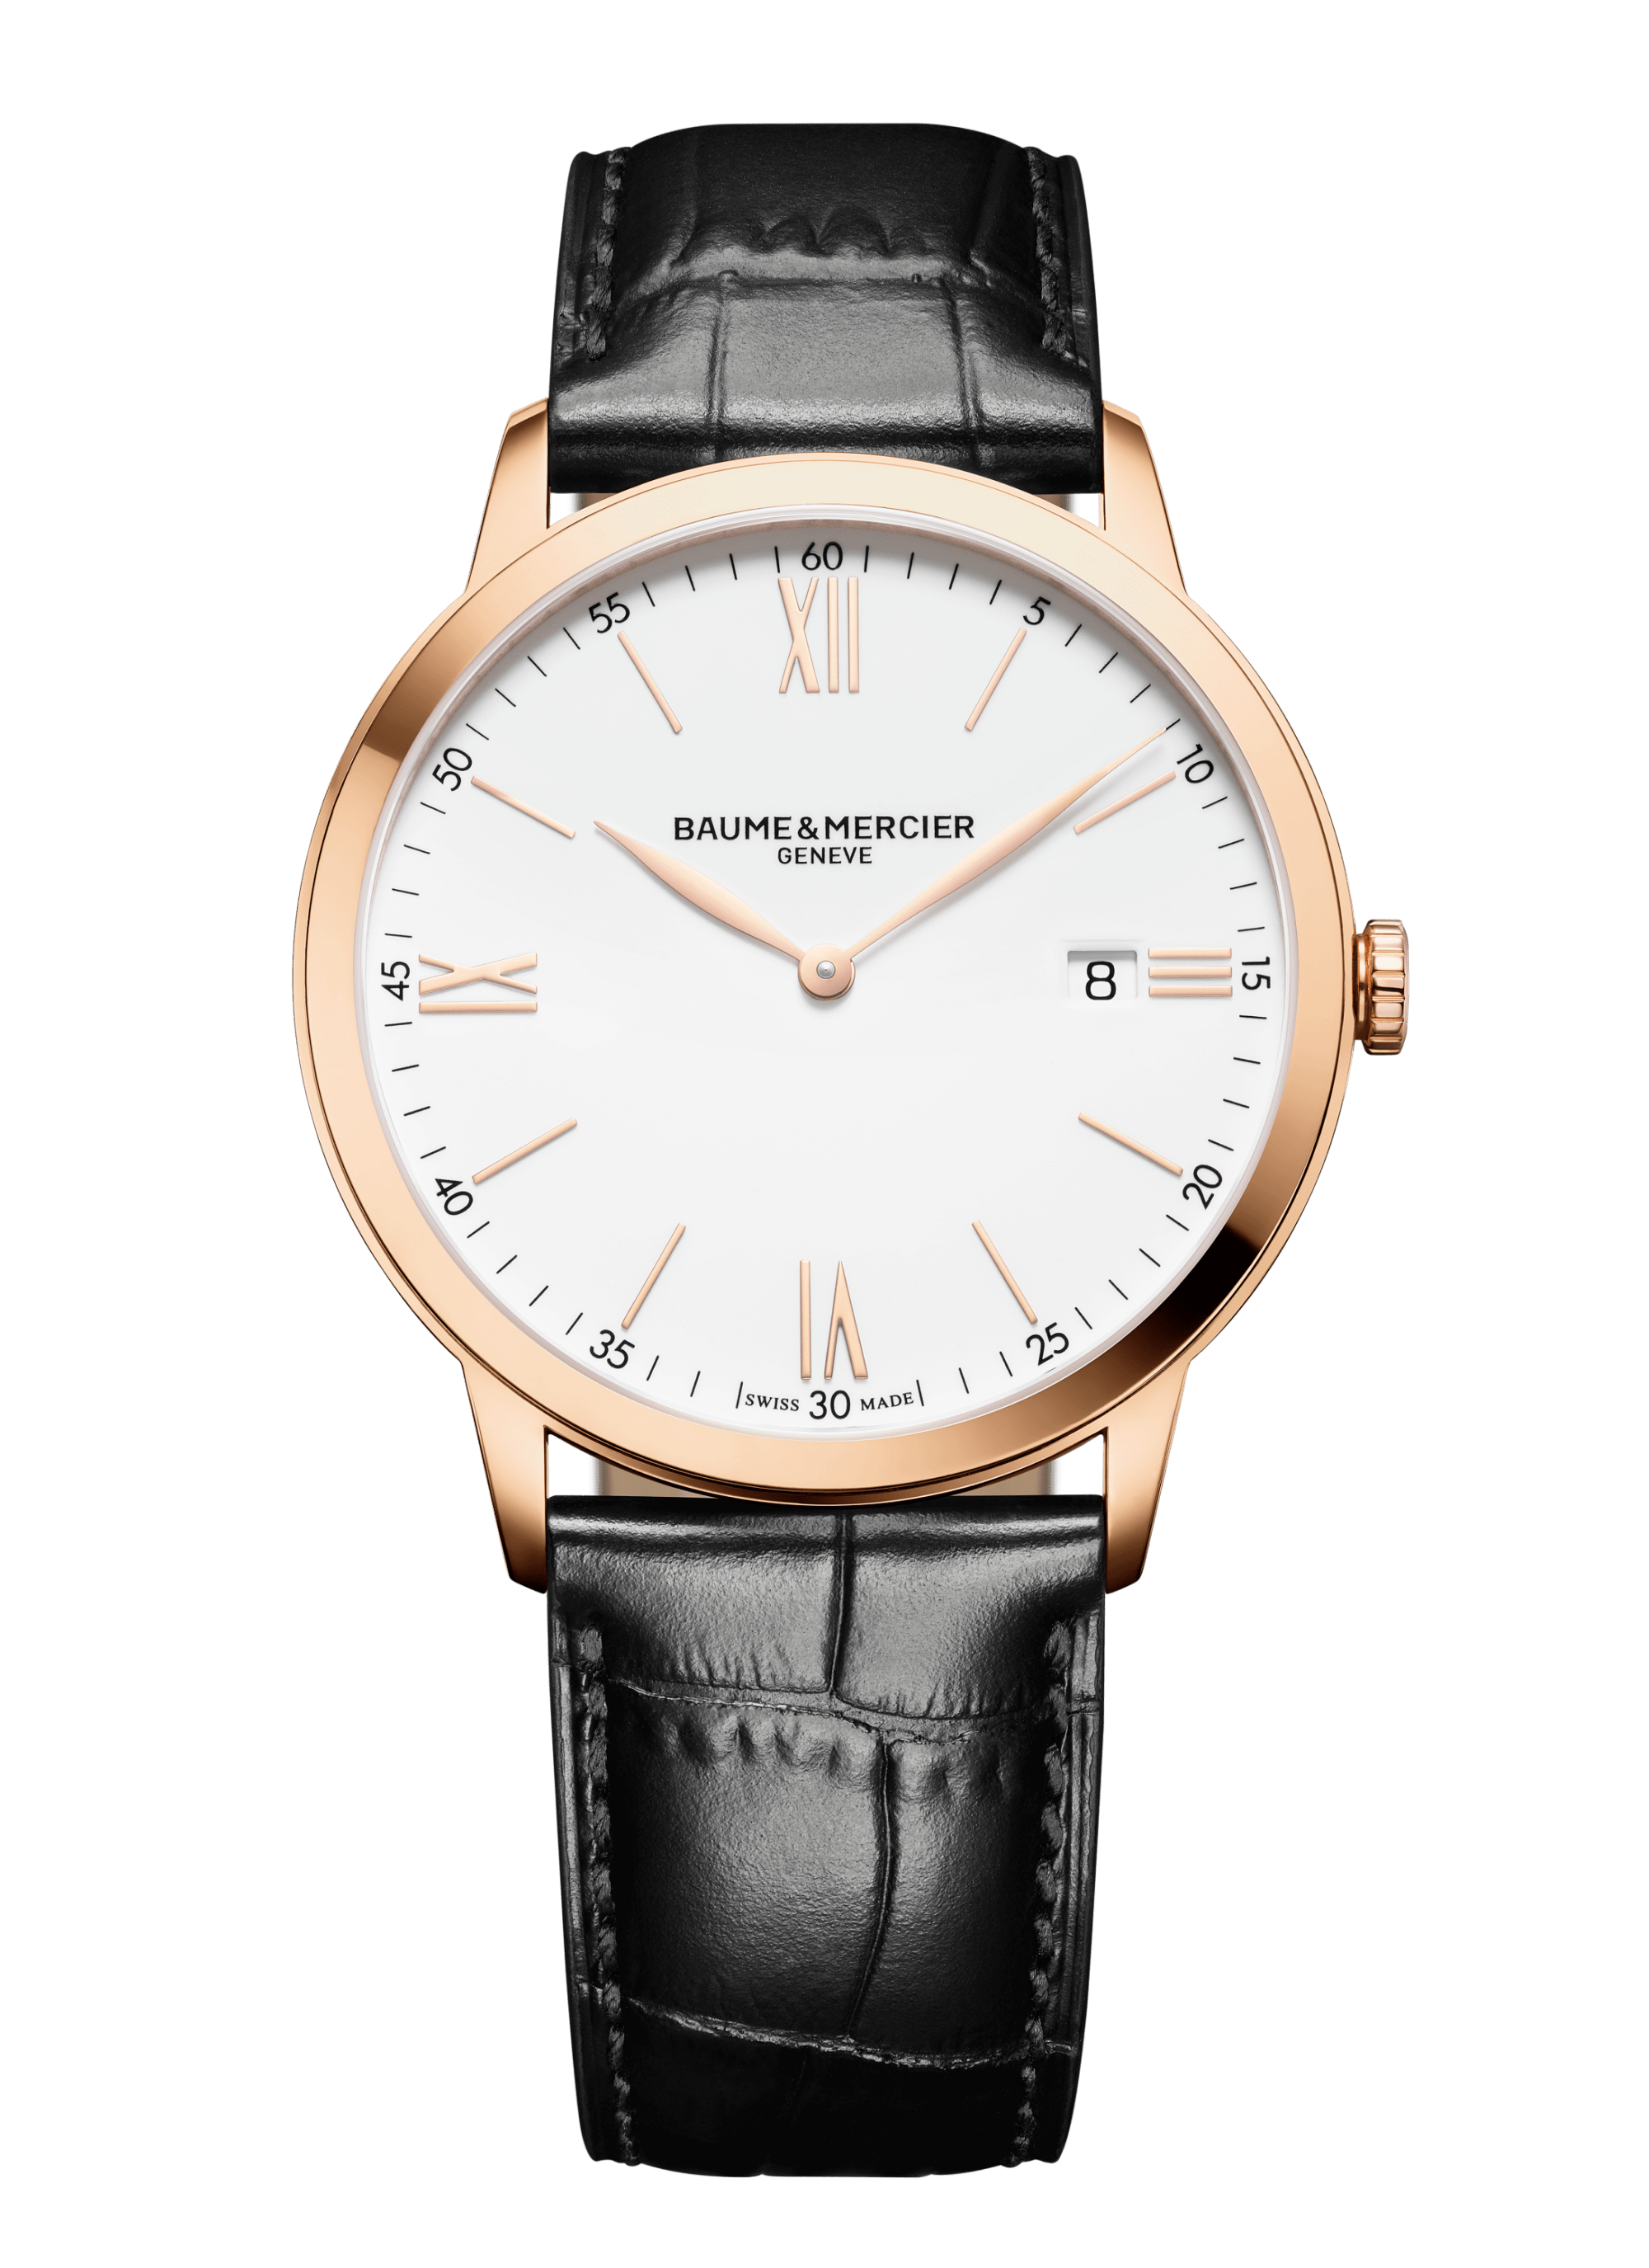 Classima 10441 Watch for men   Check Prices on Baume & Mercier   Black  leather strap, Baume mercier, Leather straps